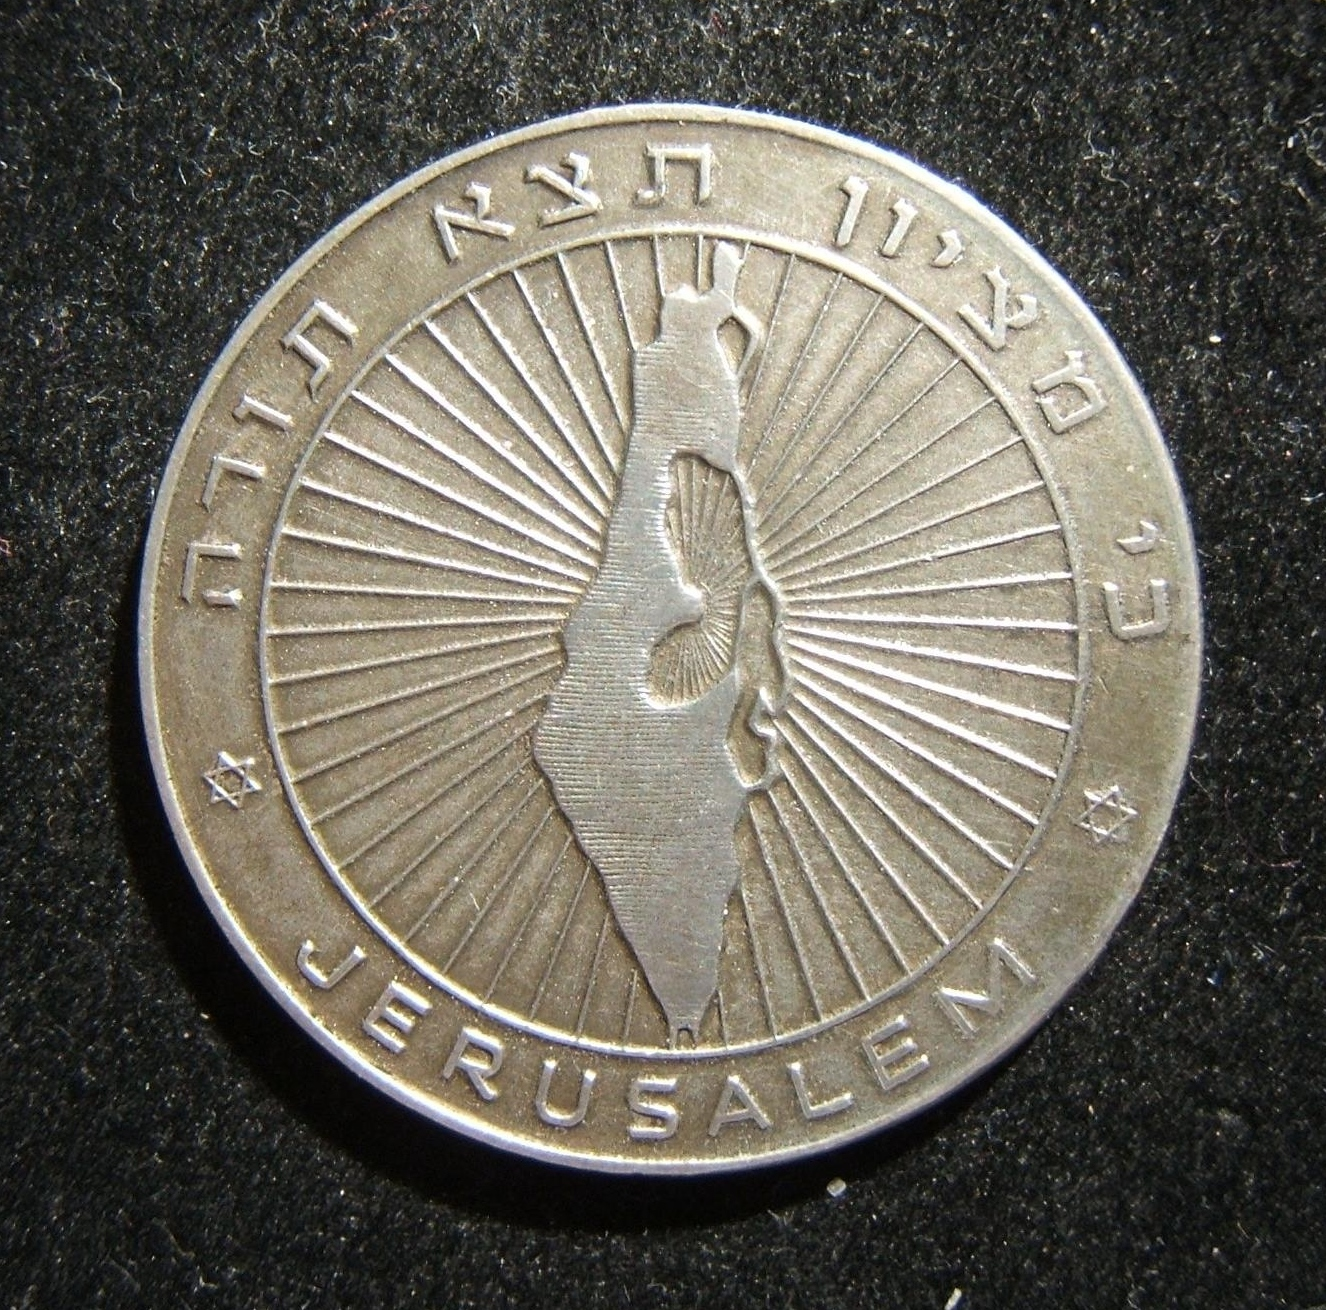 Israel: 1959-1960 Jewish holidays calendar silver(?) medal; not maker-marked; size: 35.75mm; weight: 17.05g. Obv.: shaded shape of Israel (per 1949 borders) within circle, emitting